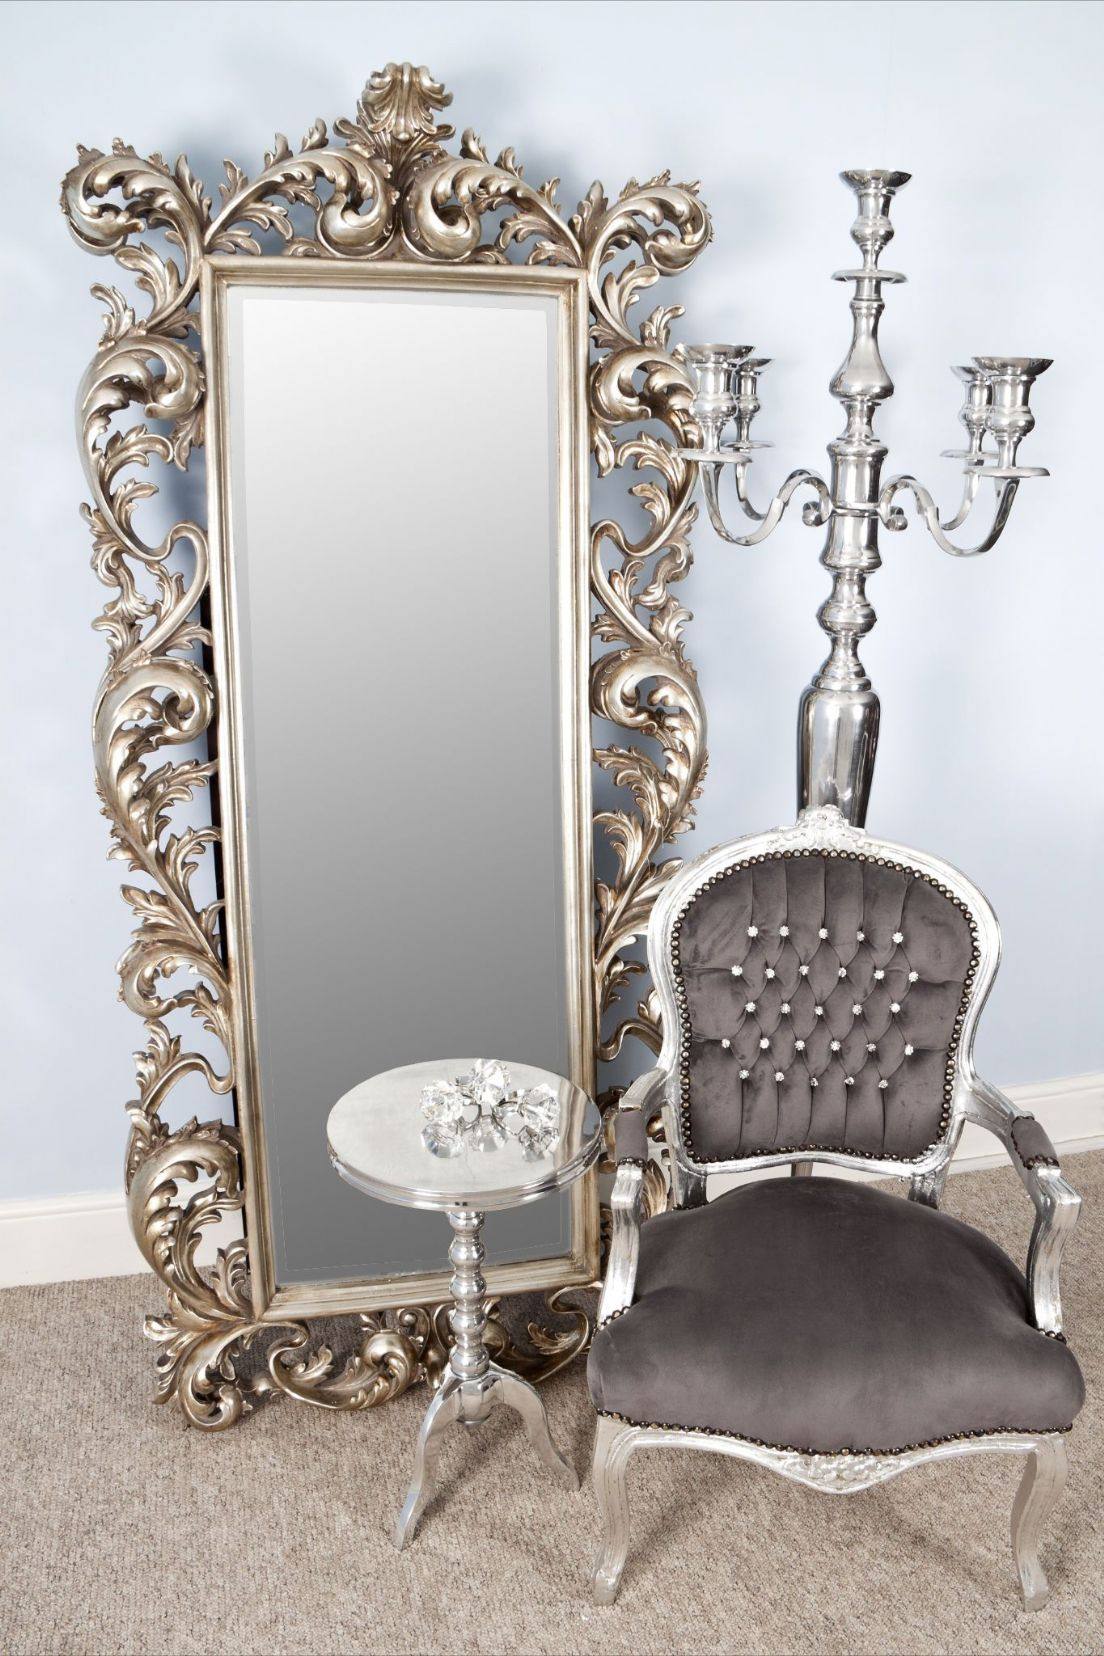 Full Length Mirror Ikea | Antique Mirrors for Sale | Oversized Mirrors